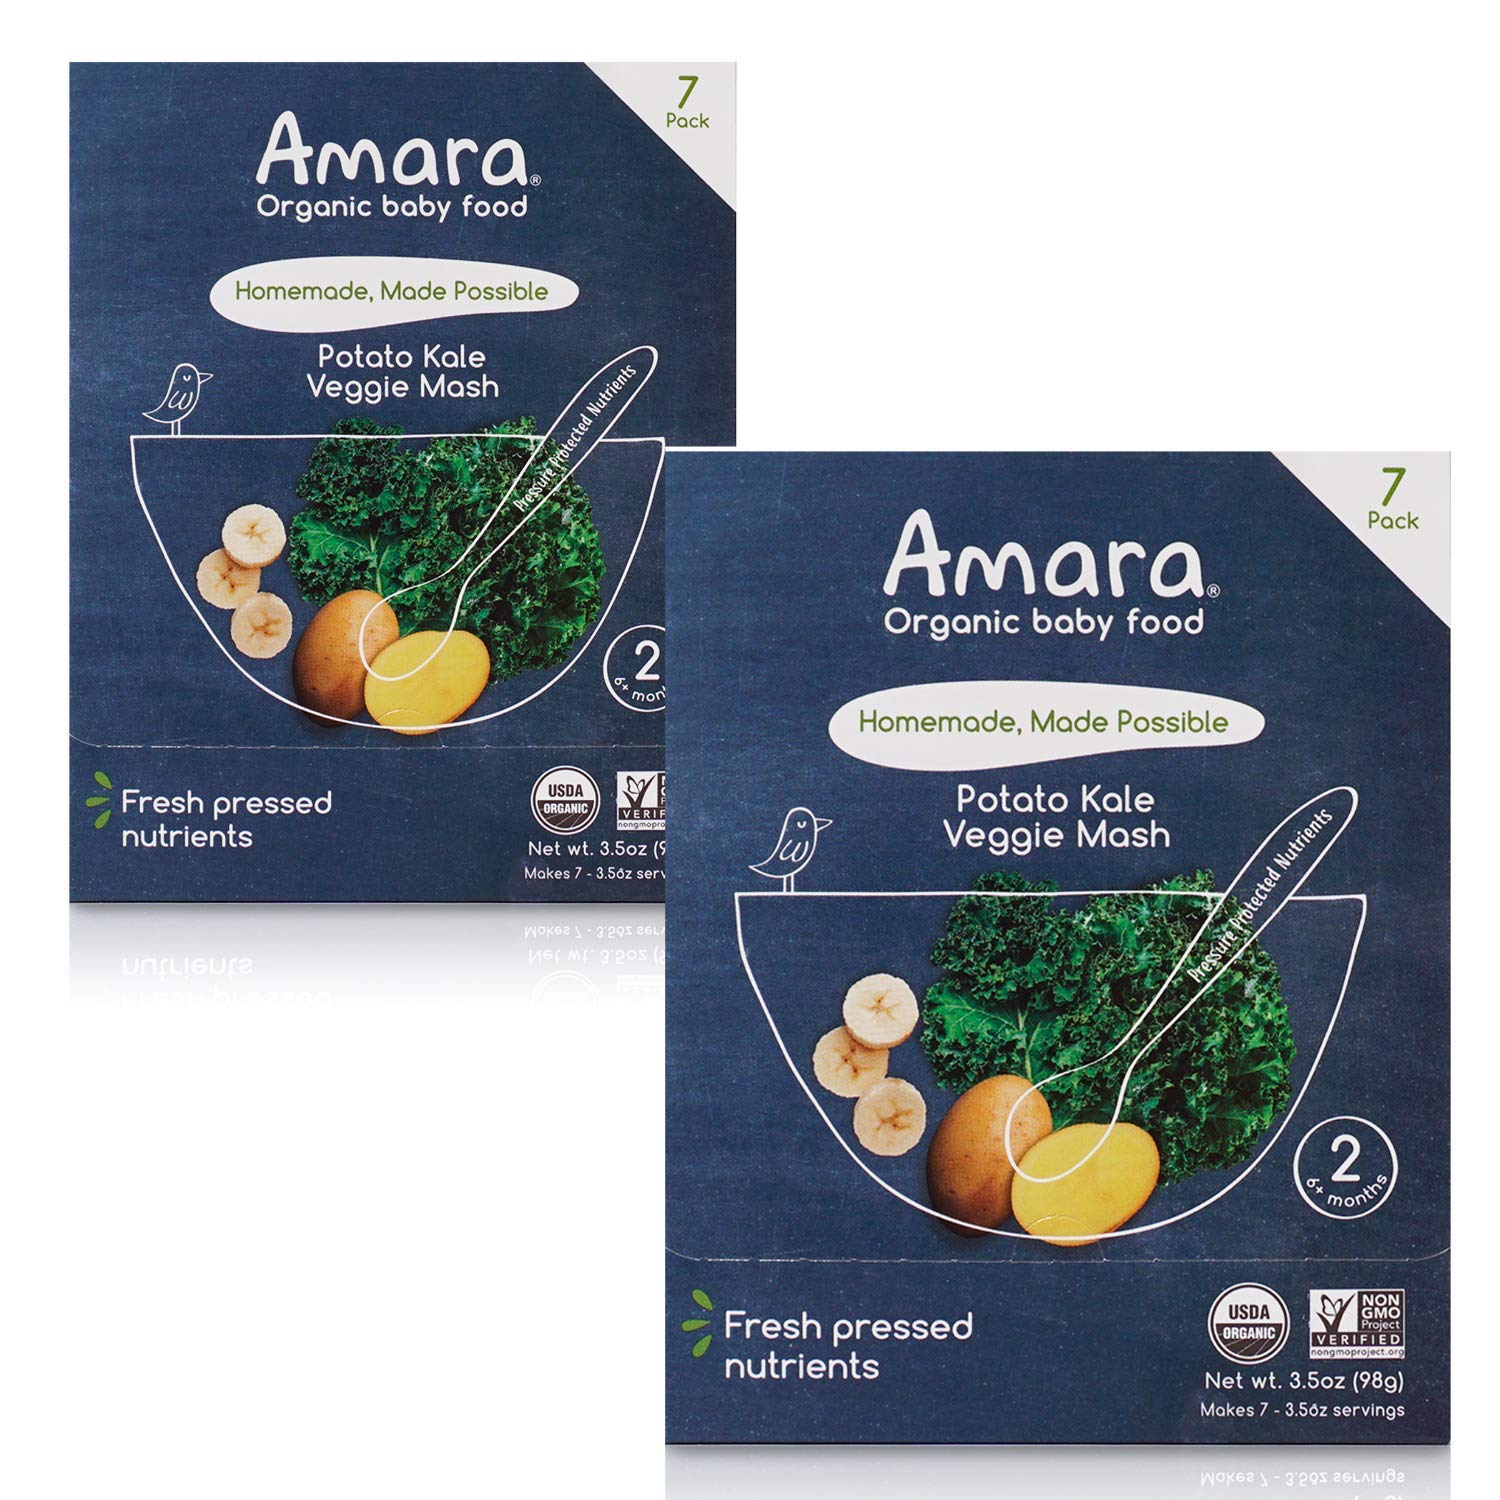 Amara Organic Baby Food | Kale Potato | Homemade Made Possible | Mix with Breastmilk or Water | Certified Organic, Non-GMO, No Added Sugars| Stage 2 | 14 Pouches